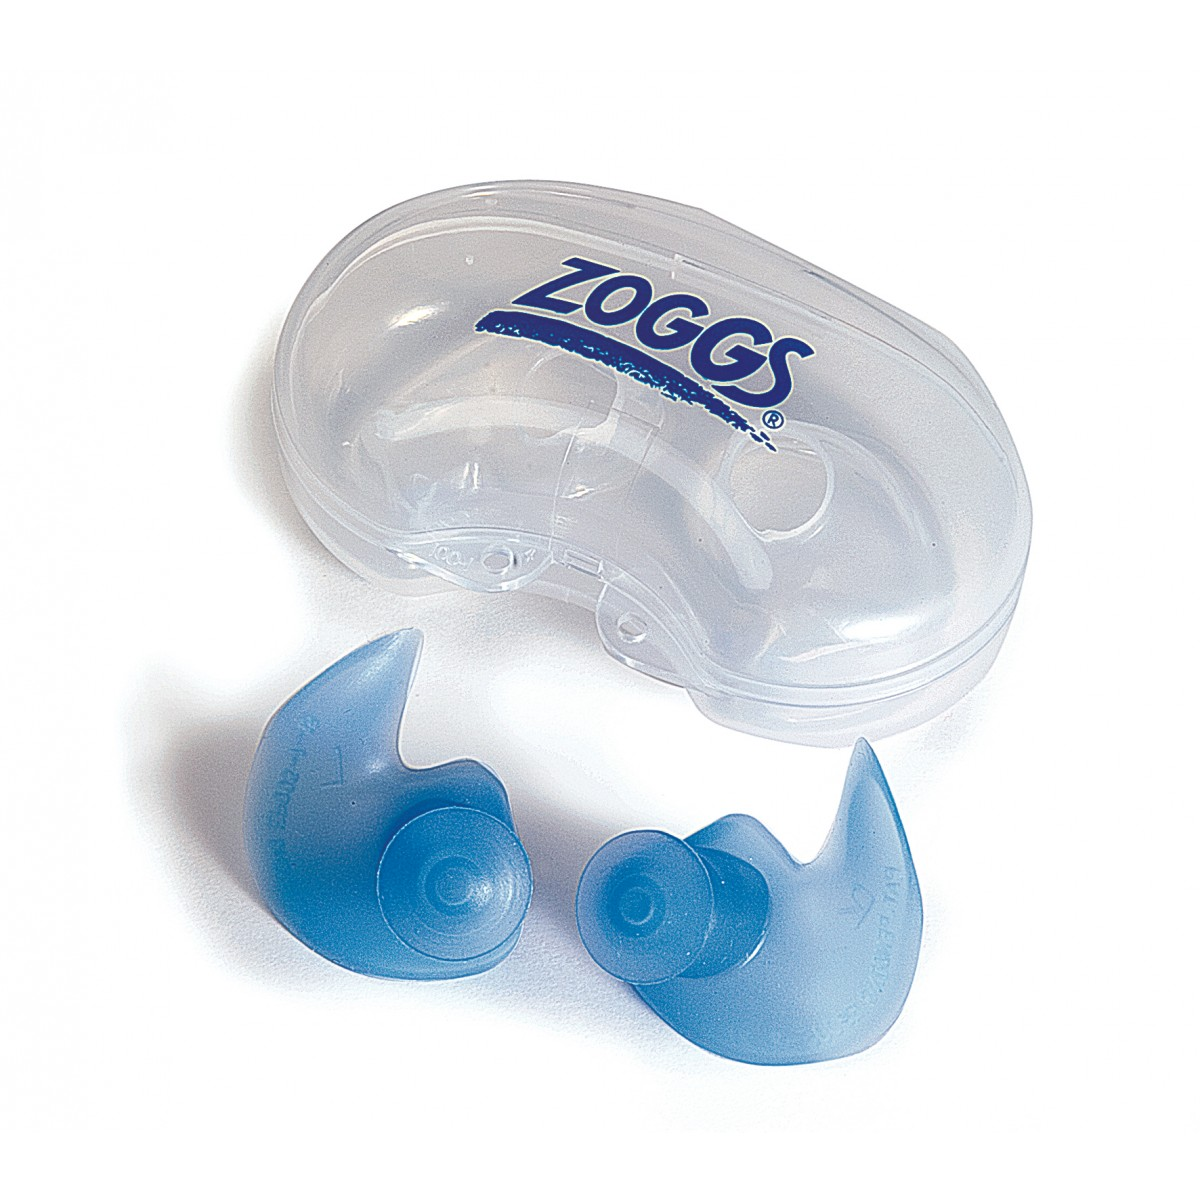 Zoggs Swimming Aqua Ear Plugs - Adult